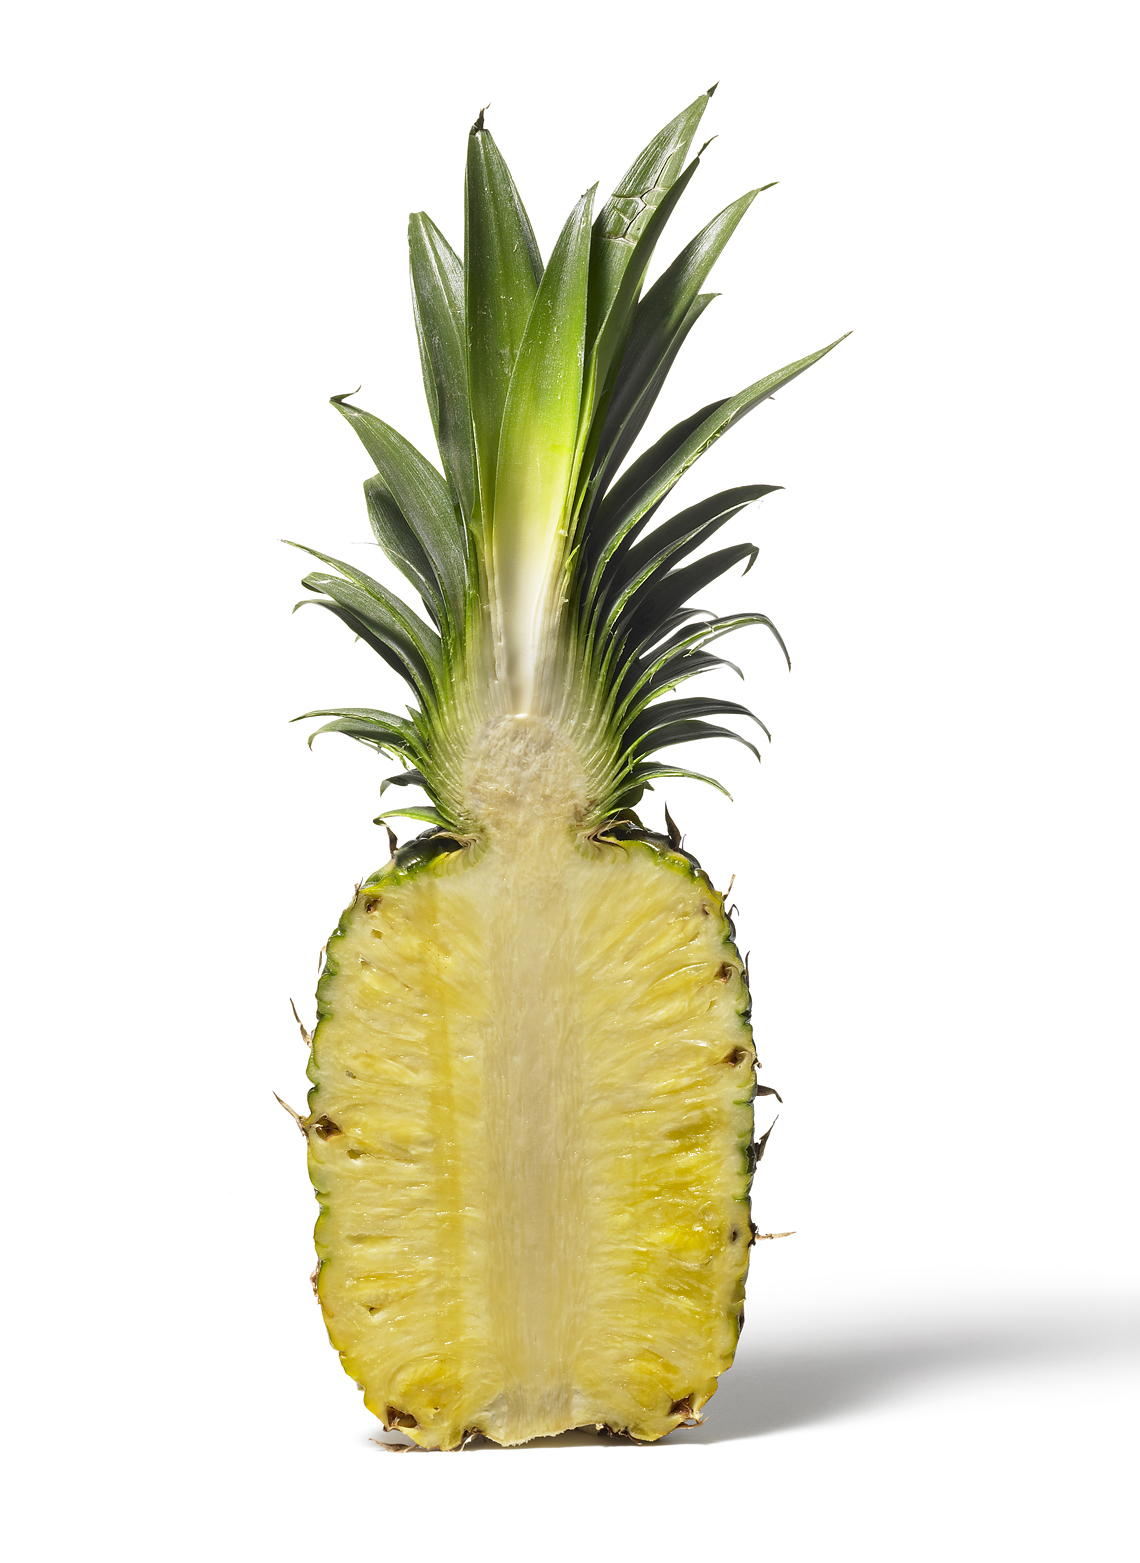 Glasshouse Assignment - Kang Kim - Food Photography - Halved Pineapple